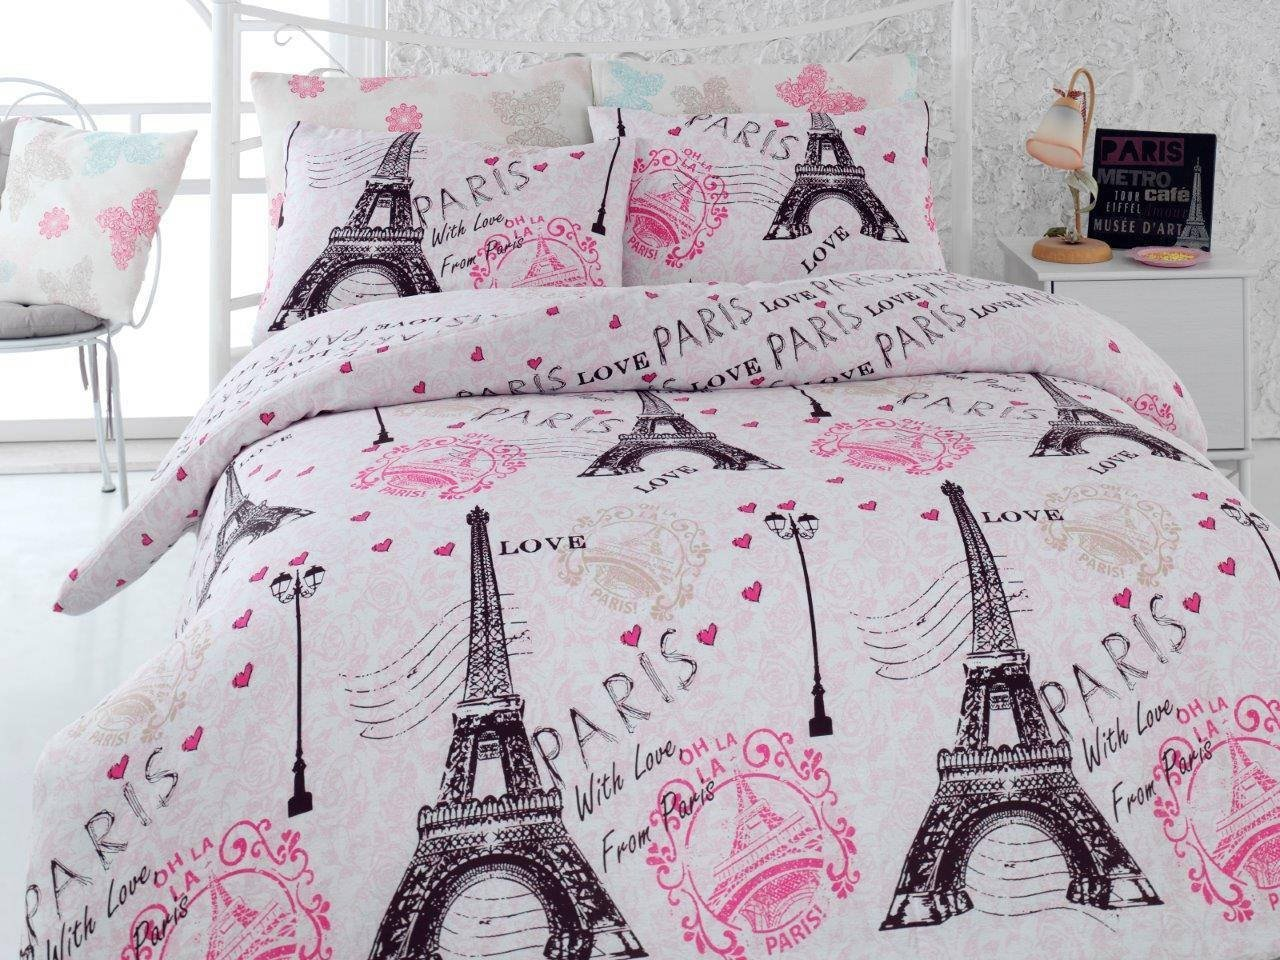 LaModaHome Culture Duvet Cover Set, 100% Cotton - with Love from Paris, Eiffel Tower, Romantic - Set of 3 - Duvet Cover and Two Pillowcases for Full Bed